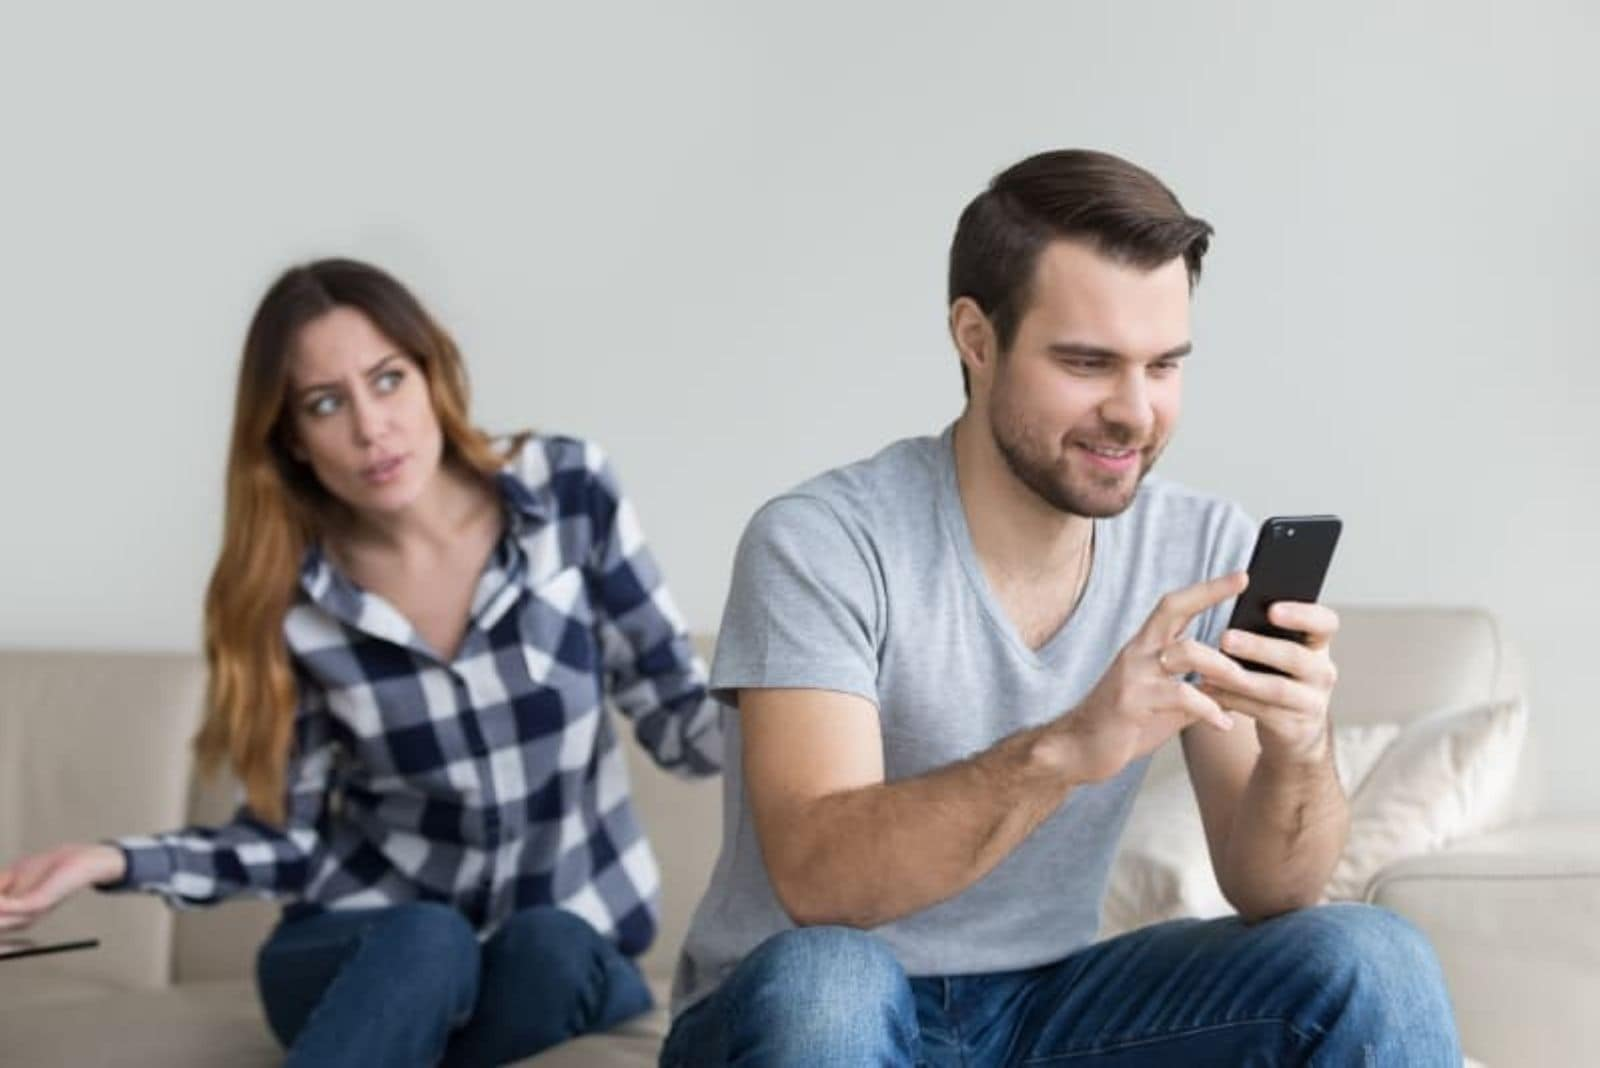 nervous woman while man holding phone